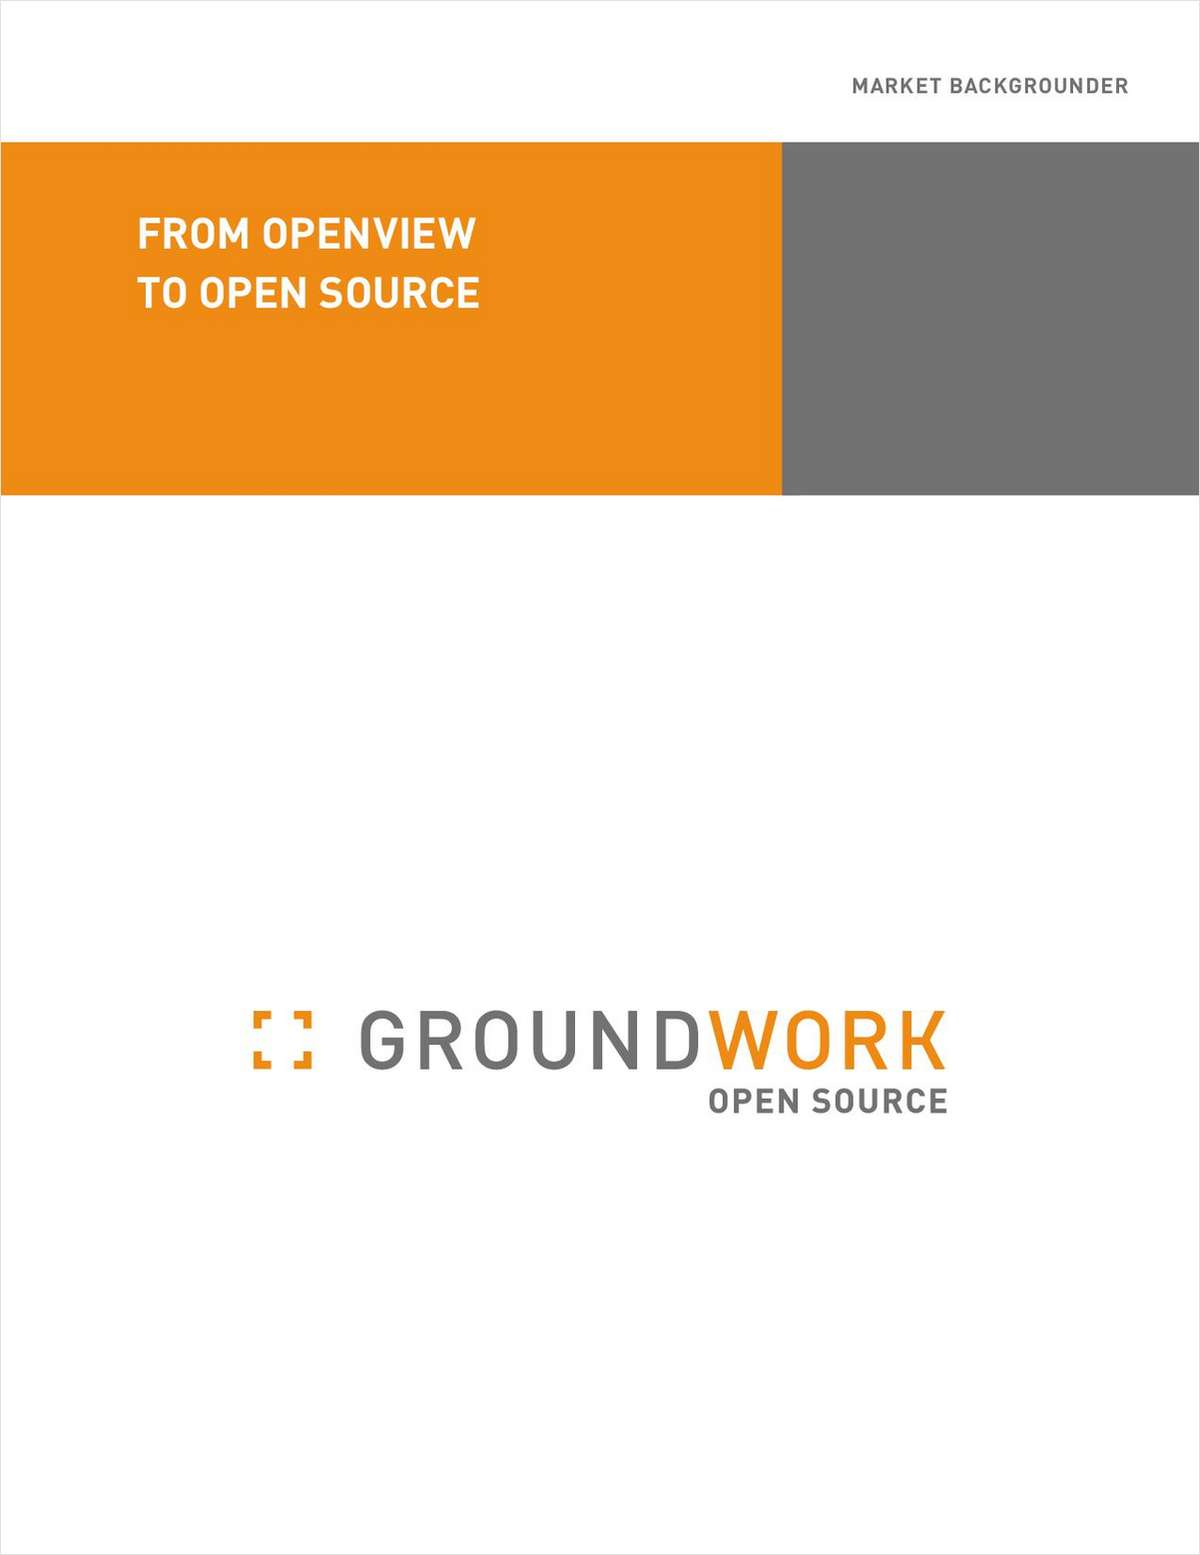 From OpenView to Open Source